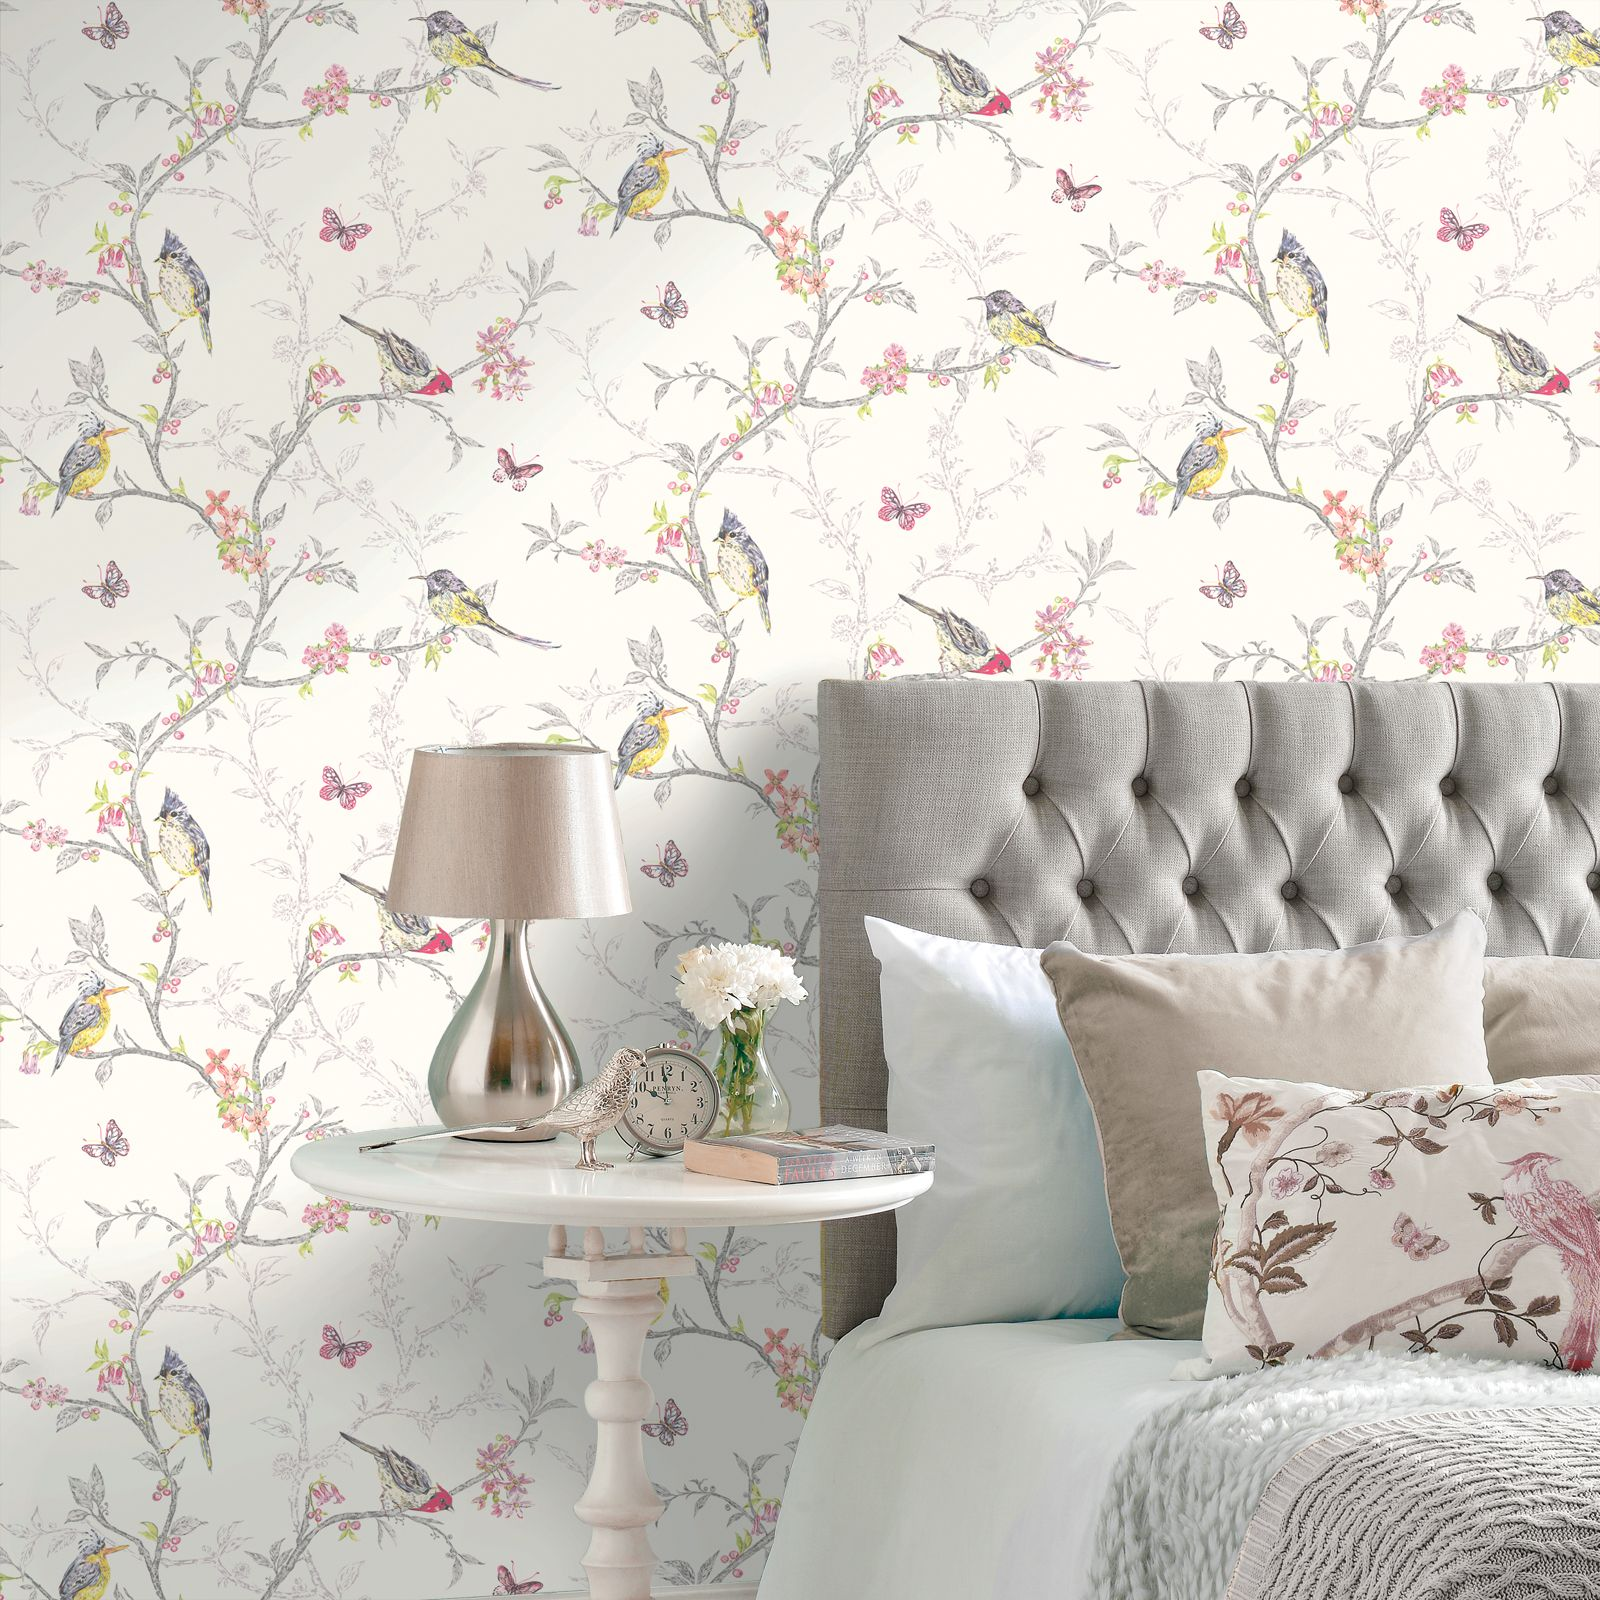 Carta Da Parati Shabby Chic On Line Shabby Chic Floral Wallpaper In Various Designs Wall Decor